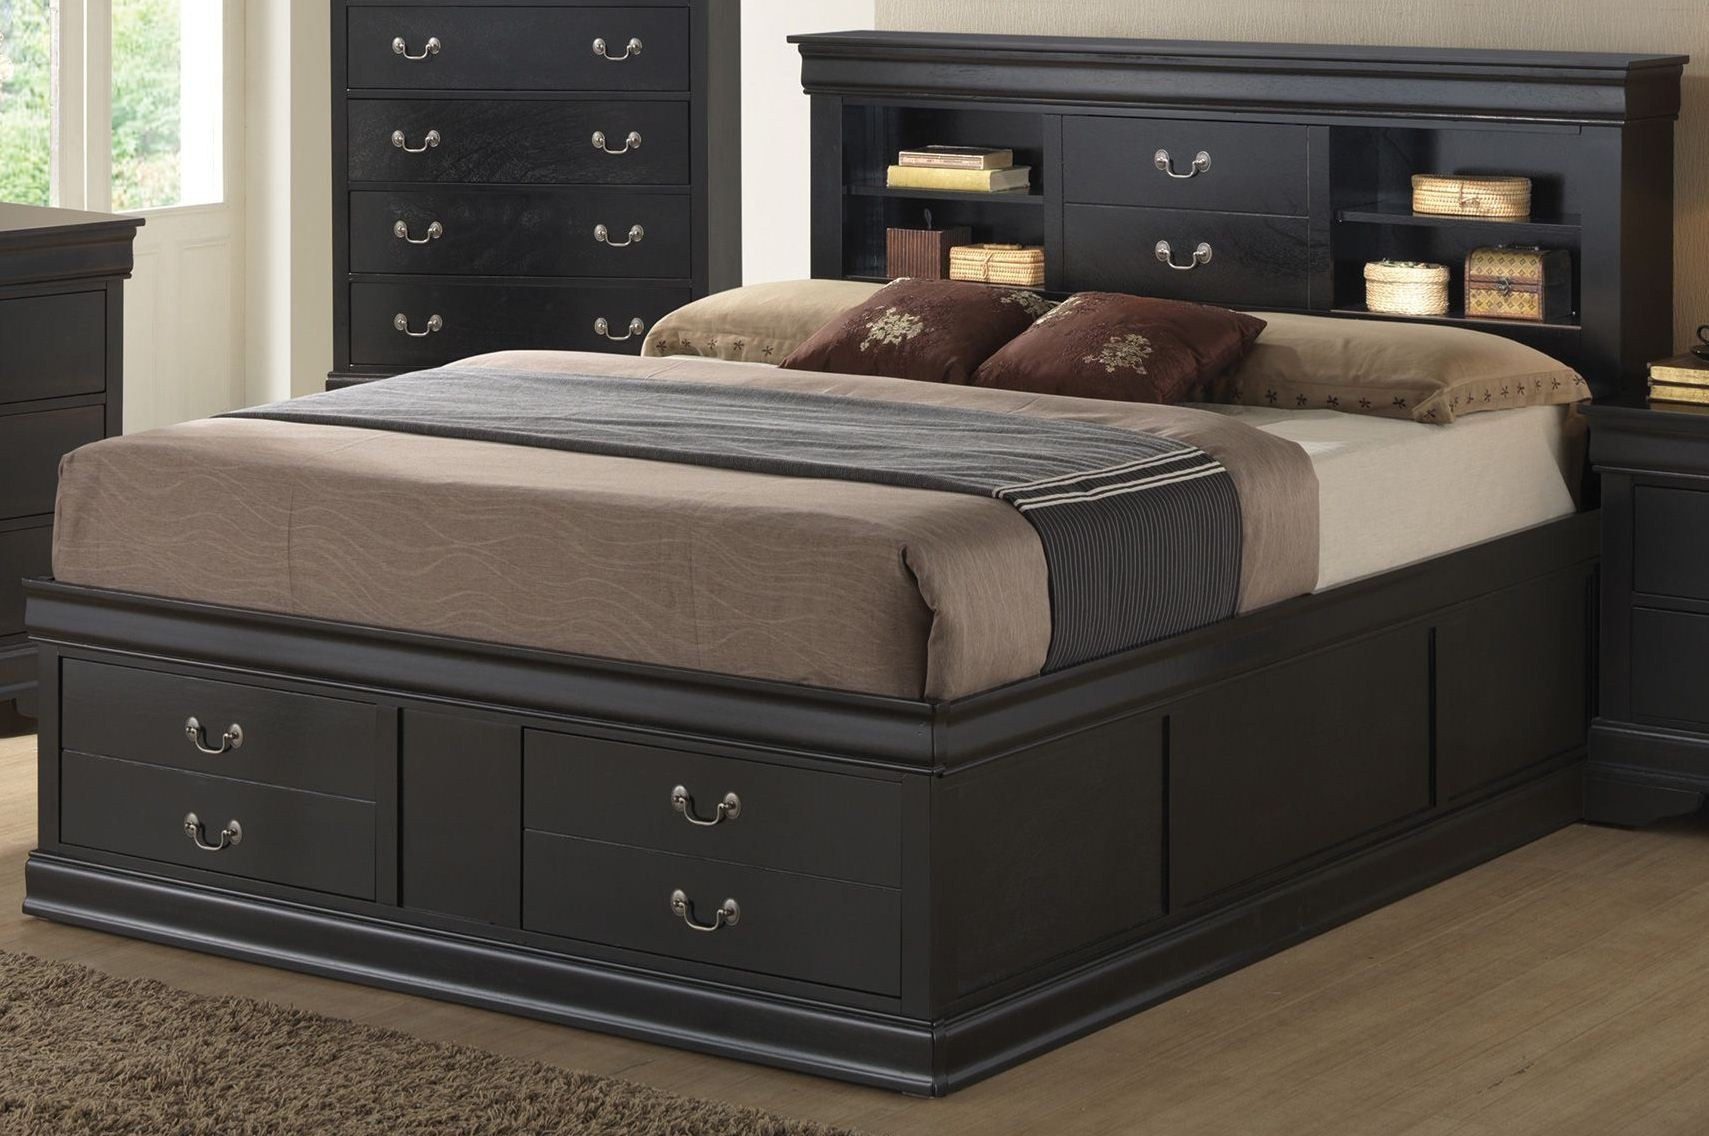 Louis philippe black storage bedroom set from coaster 201079q coleman furniture for Louis philippe bedroom collection